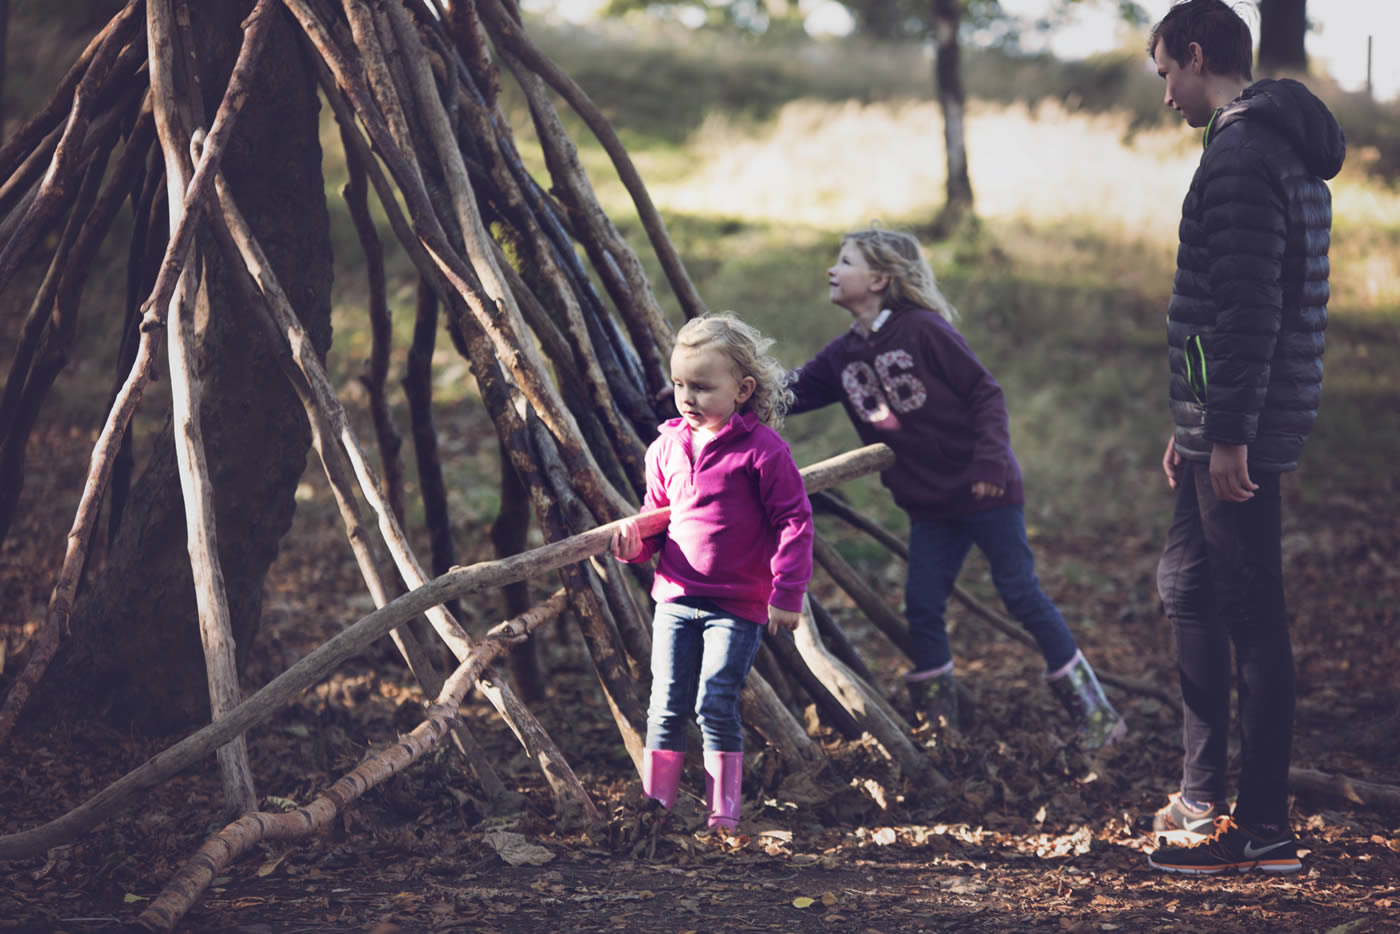 Two children building dens in the forest